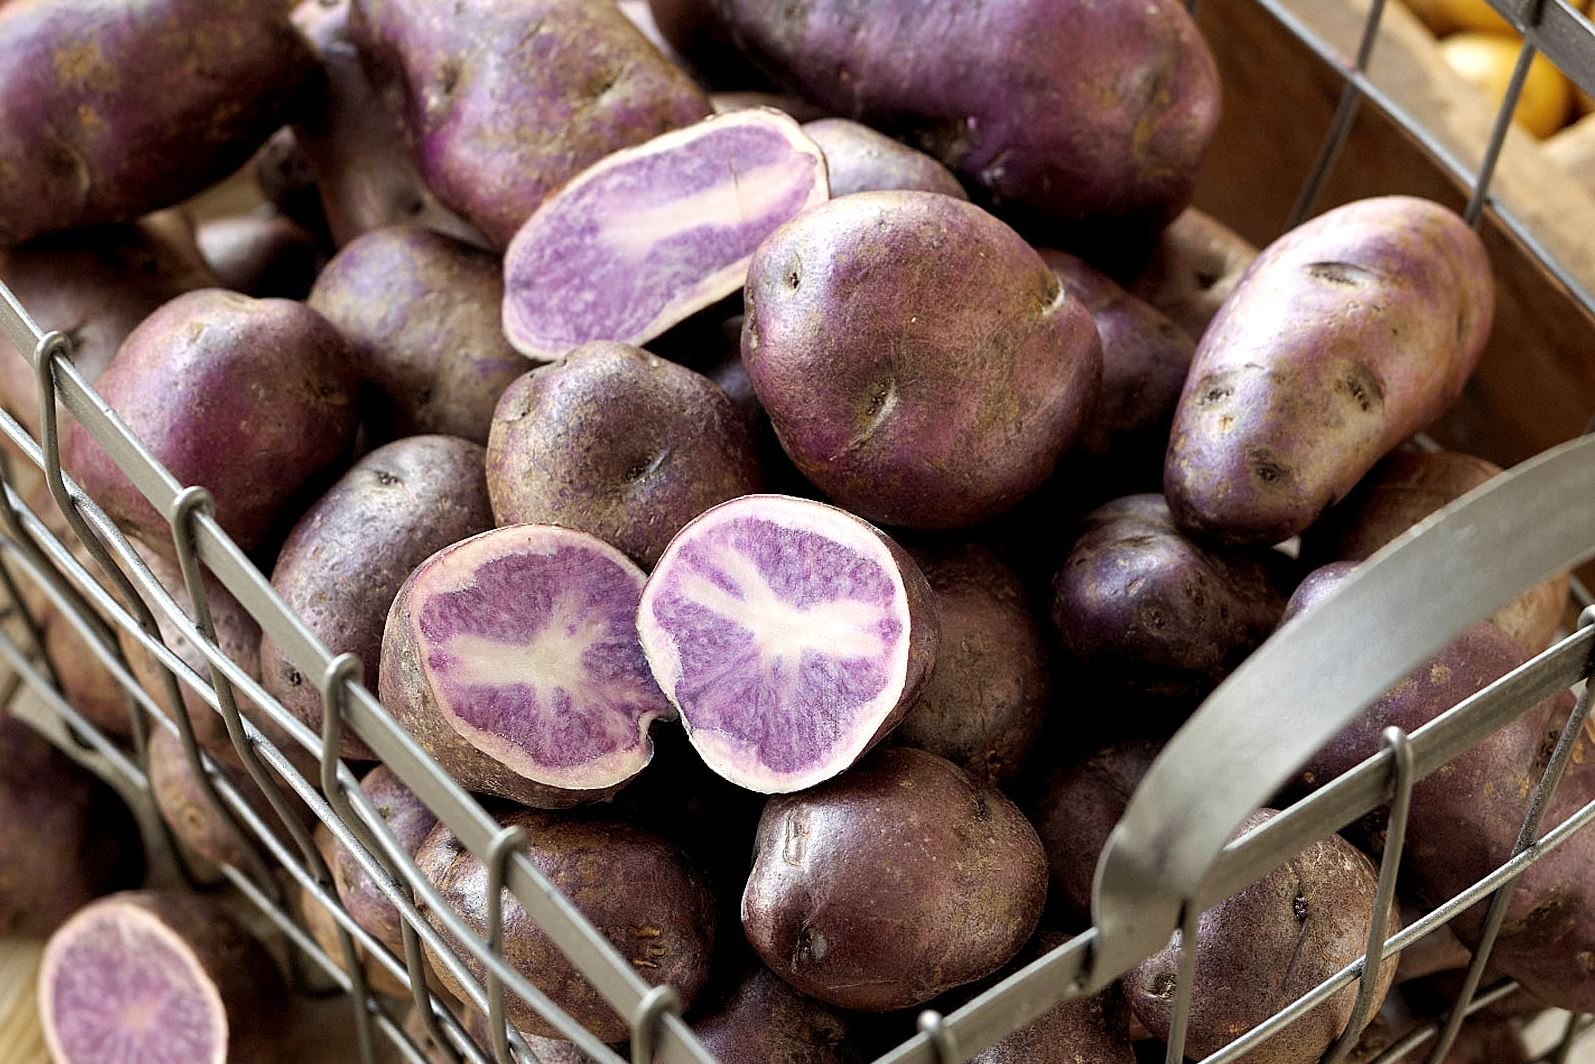 purple potatoes-2 Purple/blue potatoes range in shape from oblong to fingerling, and pop in salads because of their color. Their firm flesh also helps to retain shape when cooked.